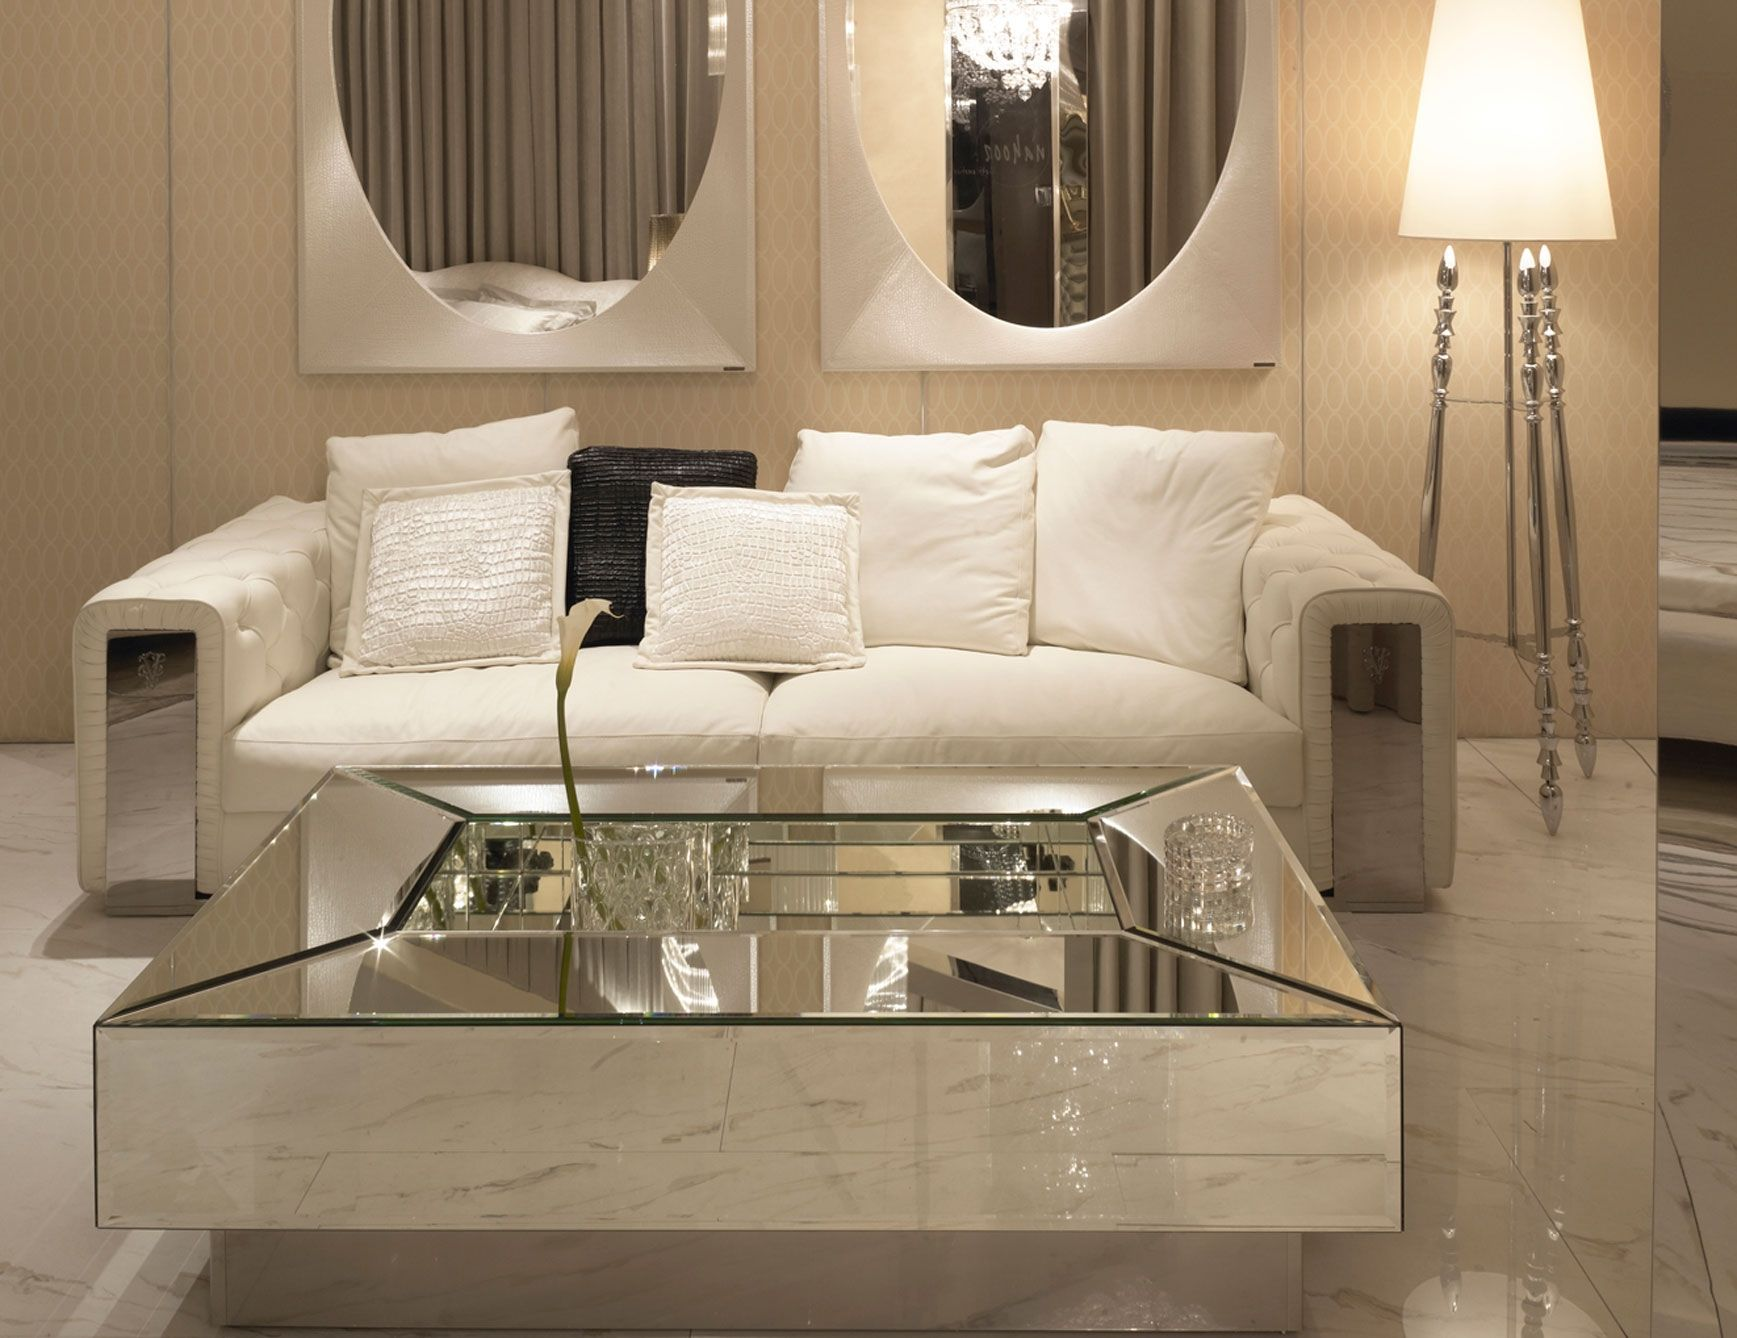 Mesmerizing Mirrored Coffee Table With Glass And Wood Combined: Furniture  Modern Minimalist Living Room Design Part 35